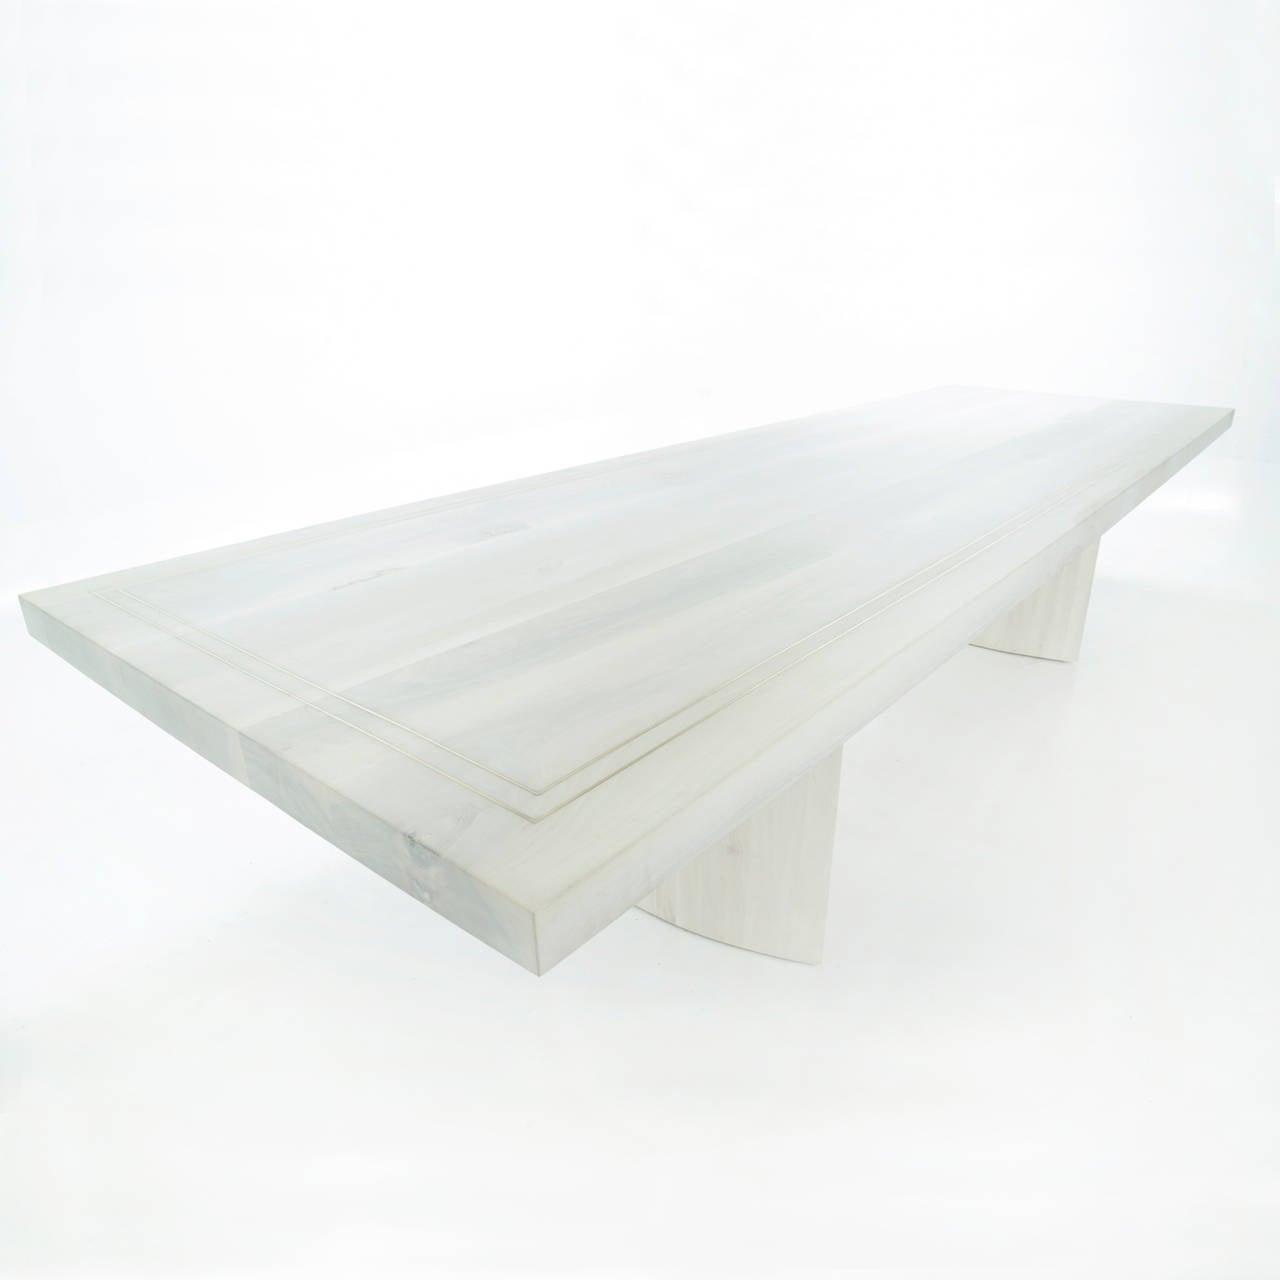 Jantar Alloy Dining Table by Thomas Hayes Studio 4